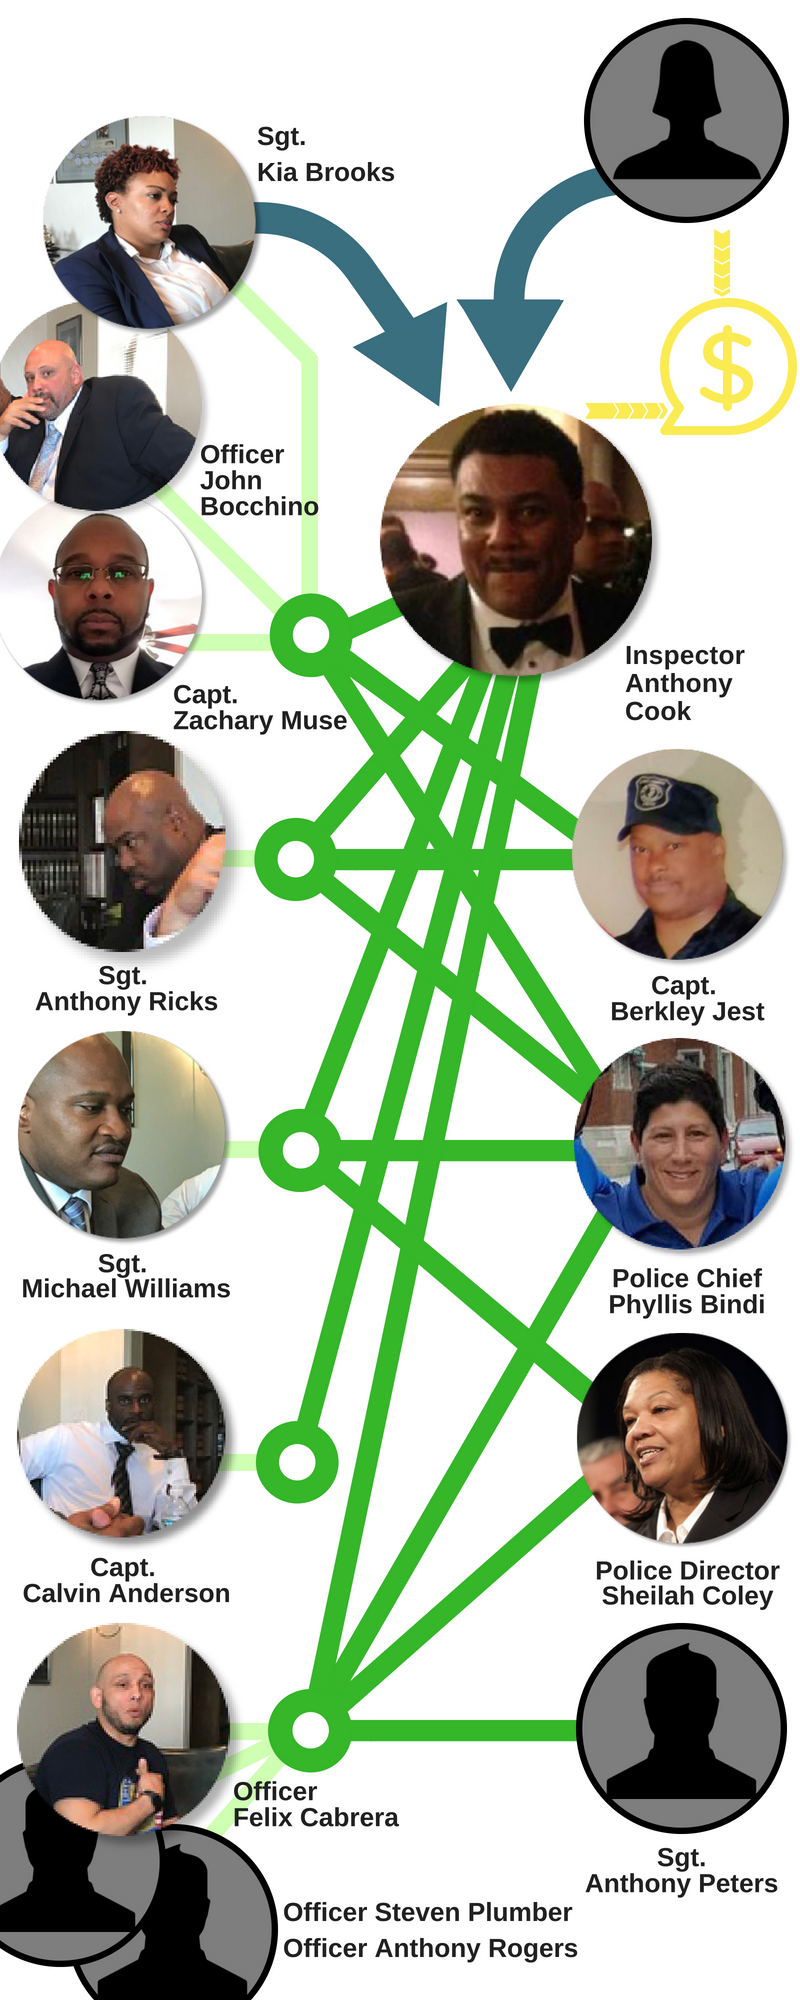 Kia Brooks says now-Inspector Anthony Cook sexually assau...